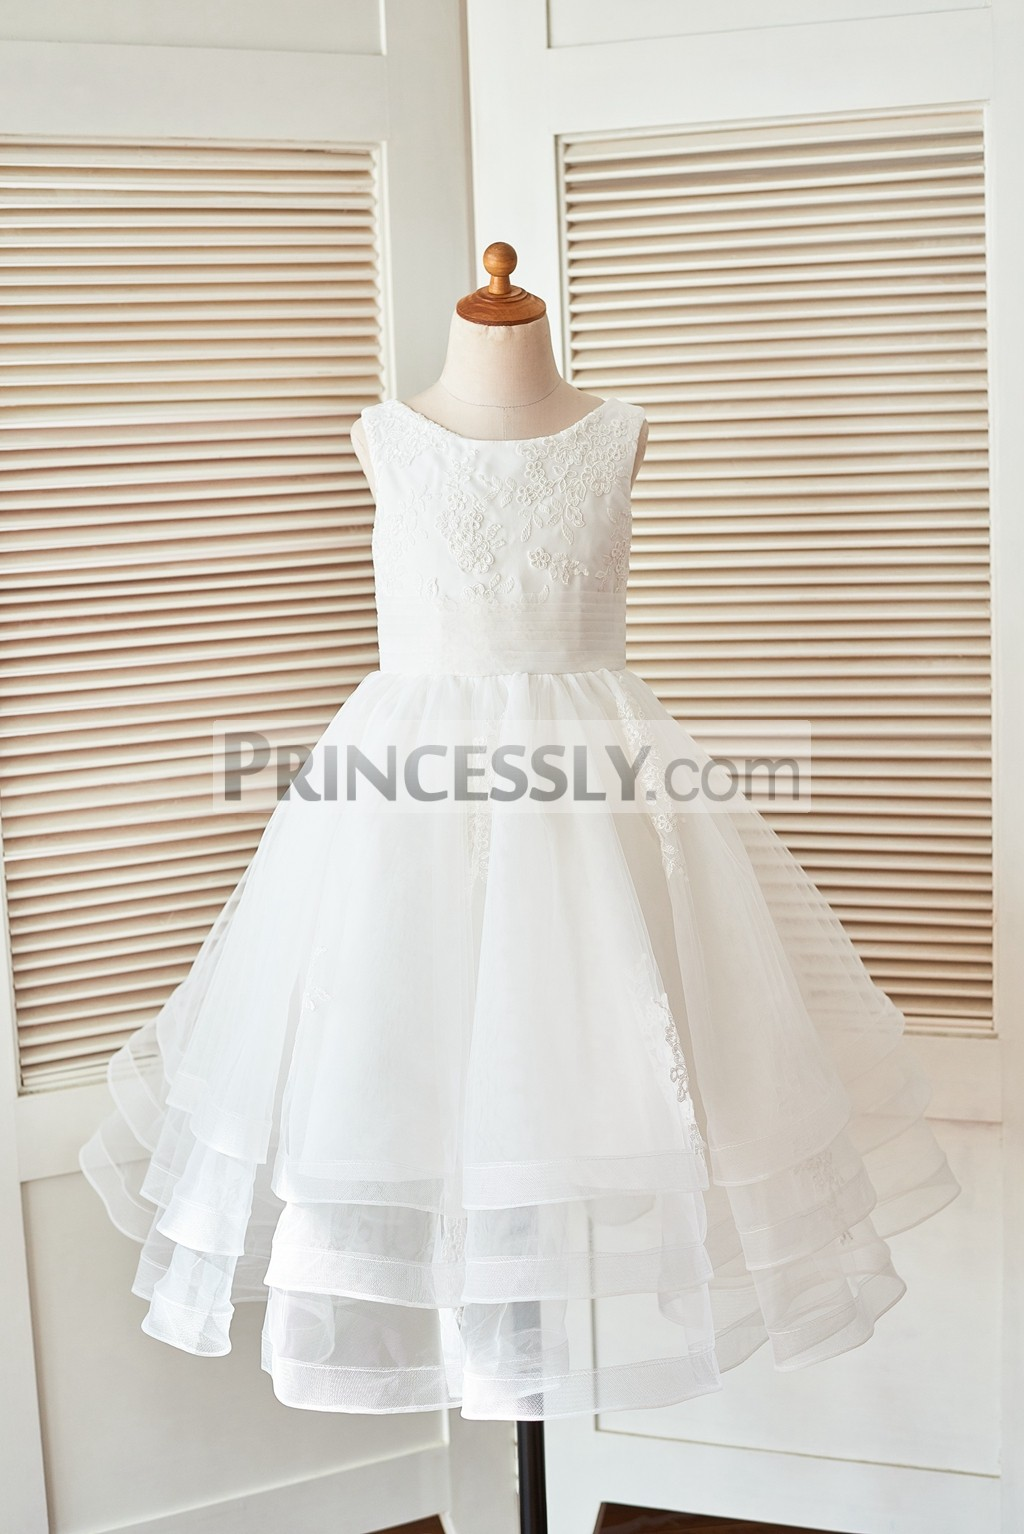 562818b661 Ivory Lace Tulle Layers Flower Girl Dress with Horse Hair Tulle Hem ...